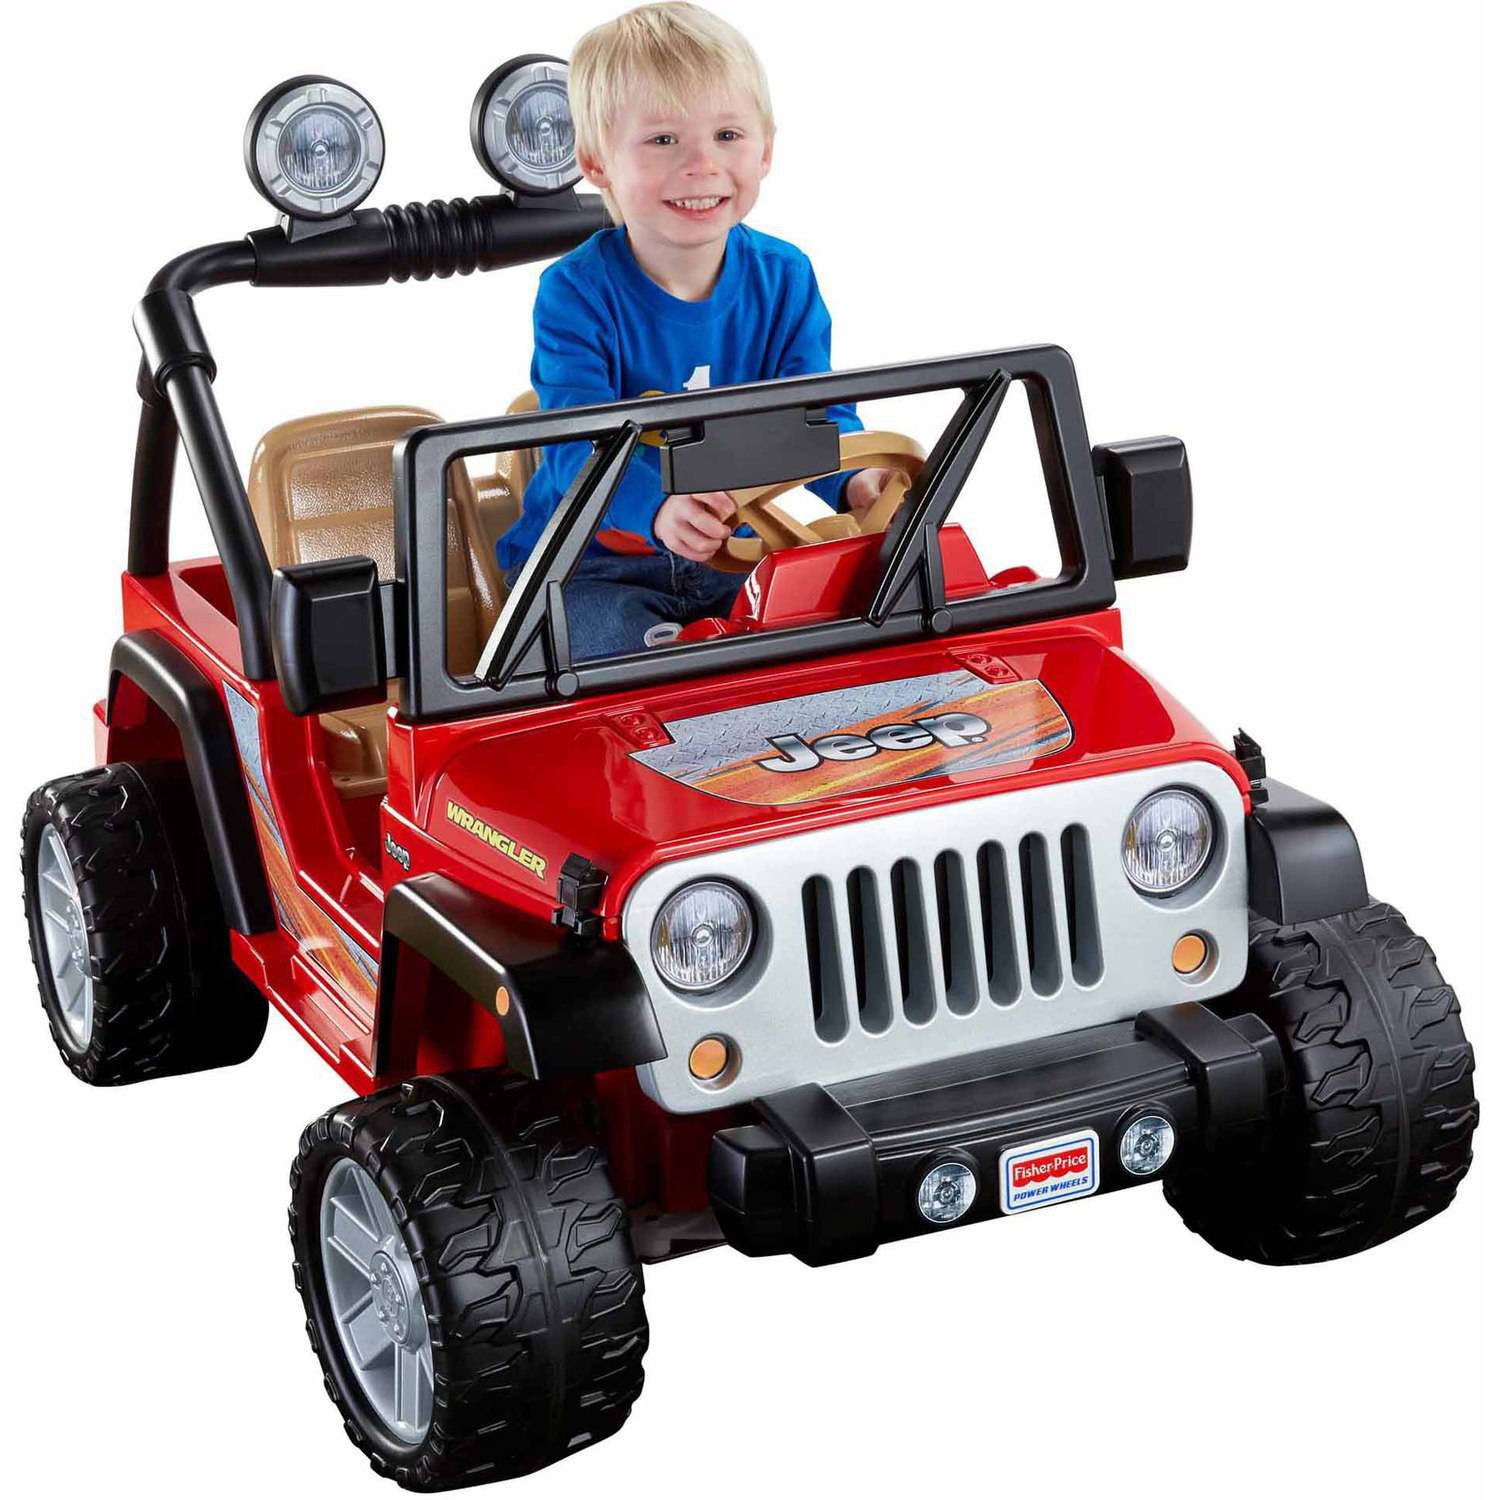 Fisher Price Power Wheels Jeep Wrangler 12-Volt Battery-Powered Ride-On, Red by Fisher-Price